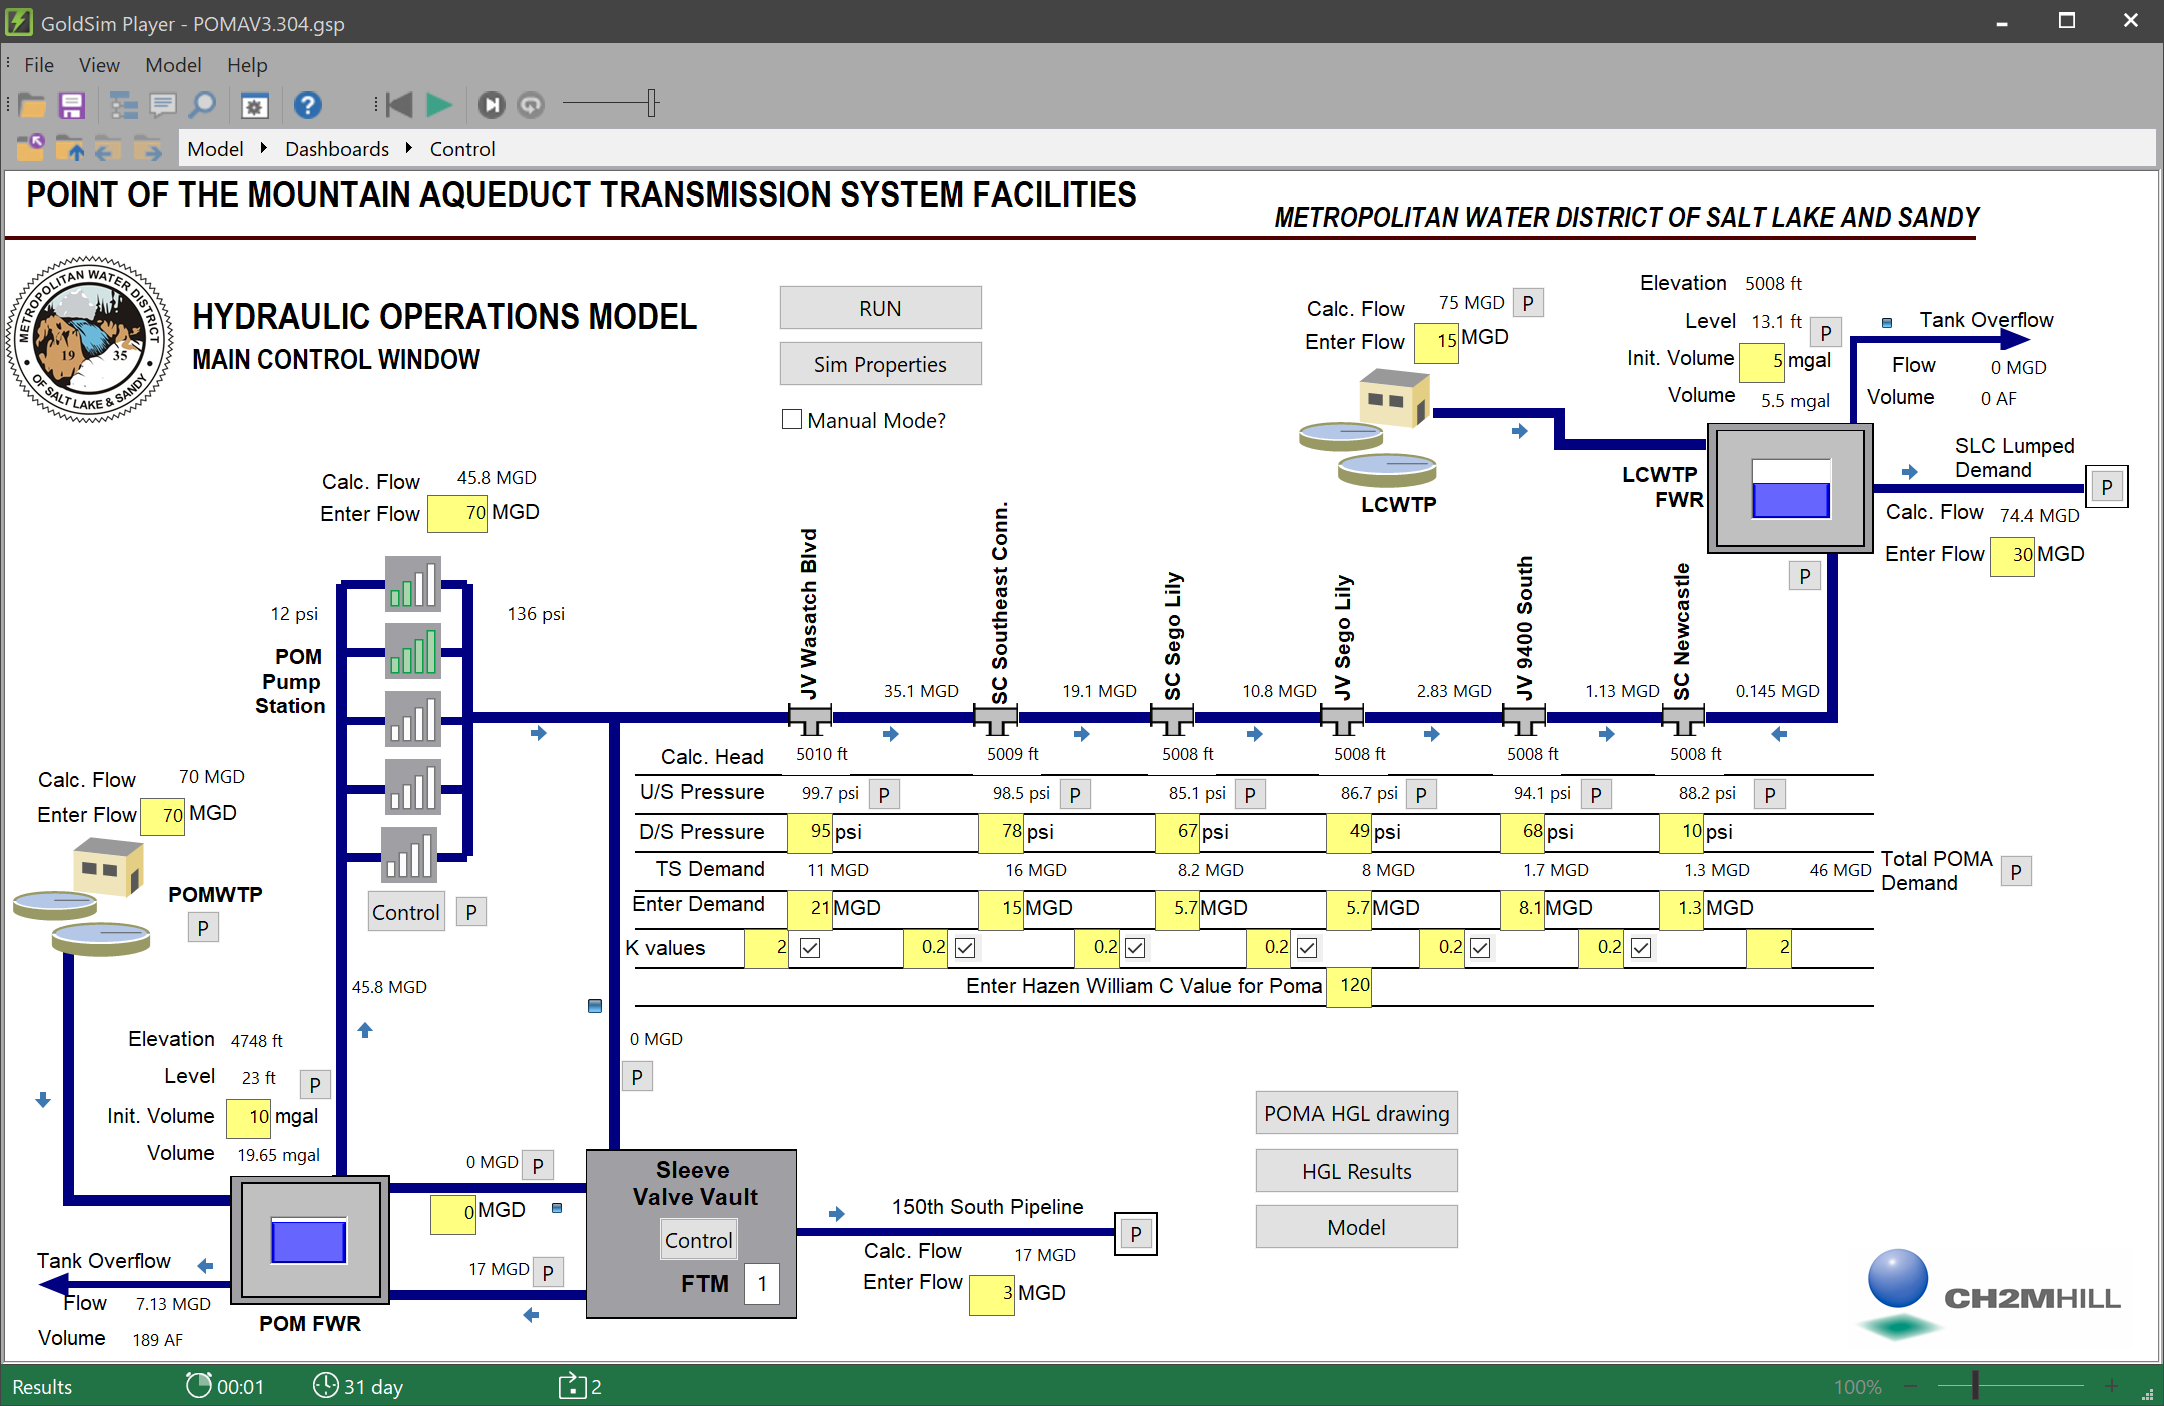 Hydraulic Operations Dashboard